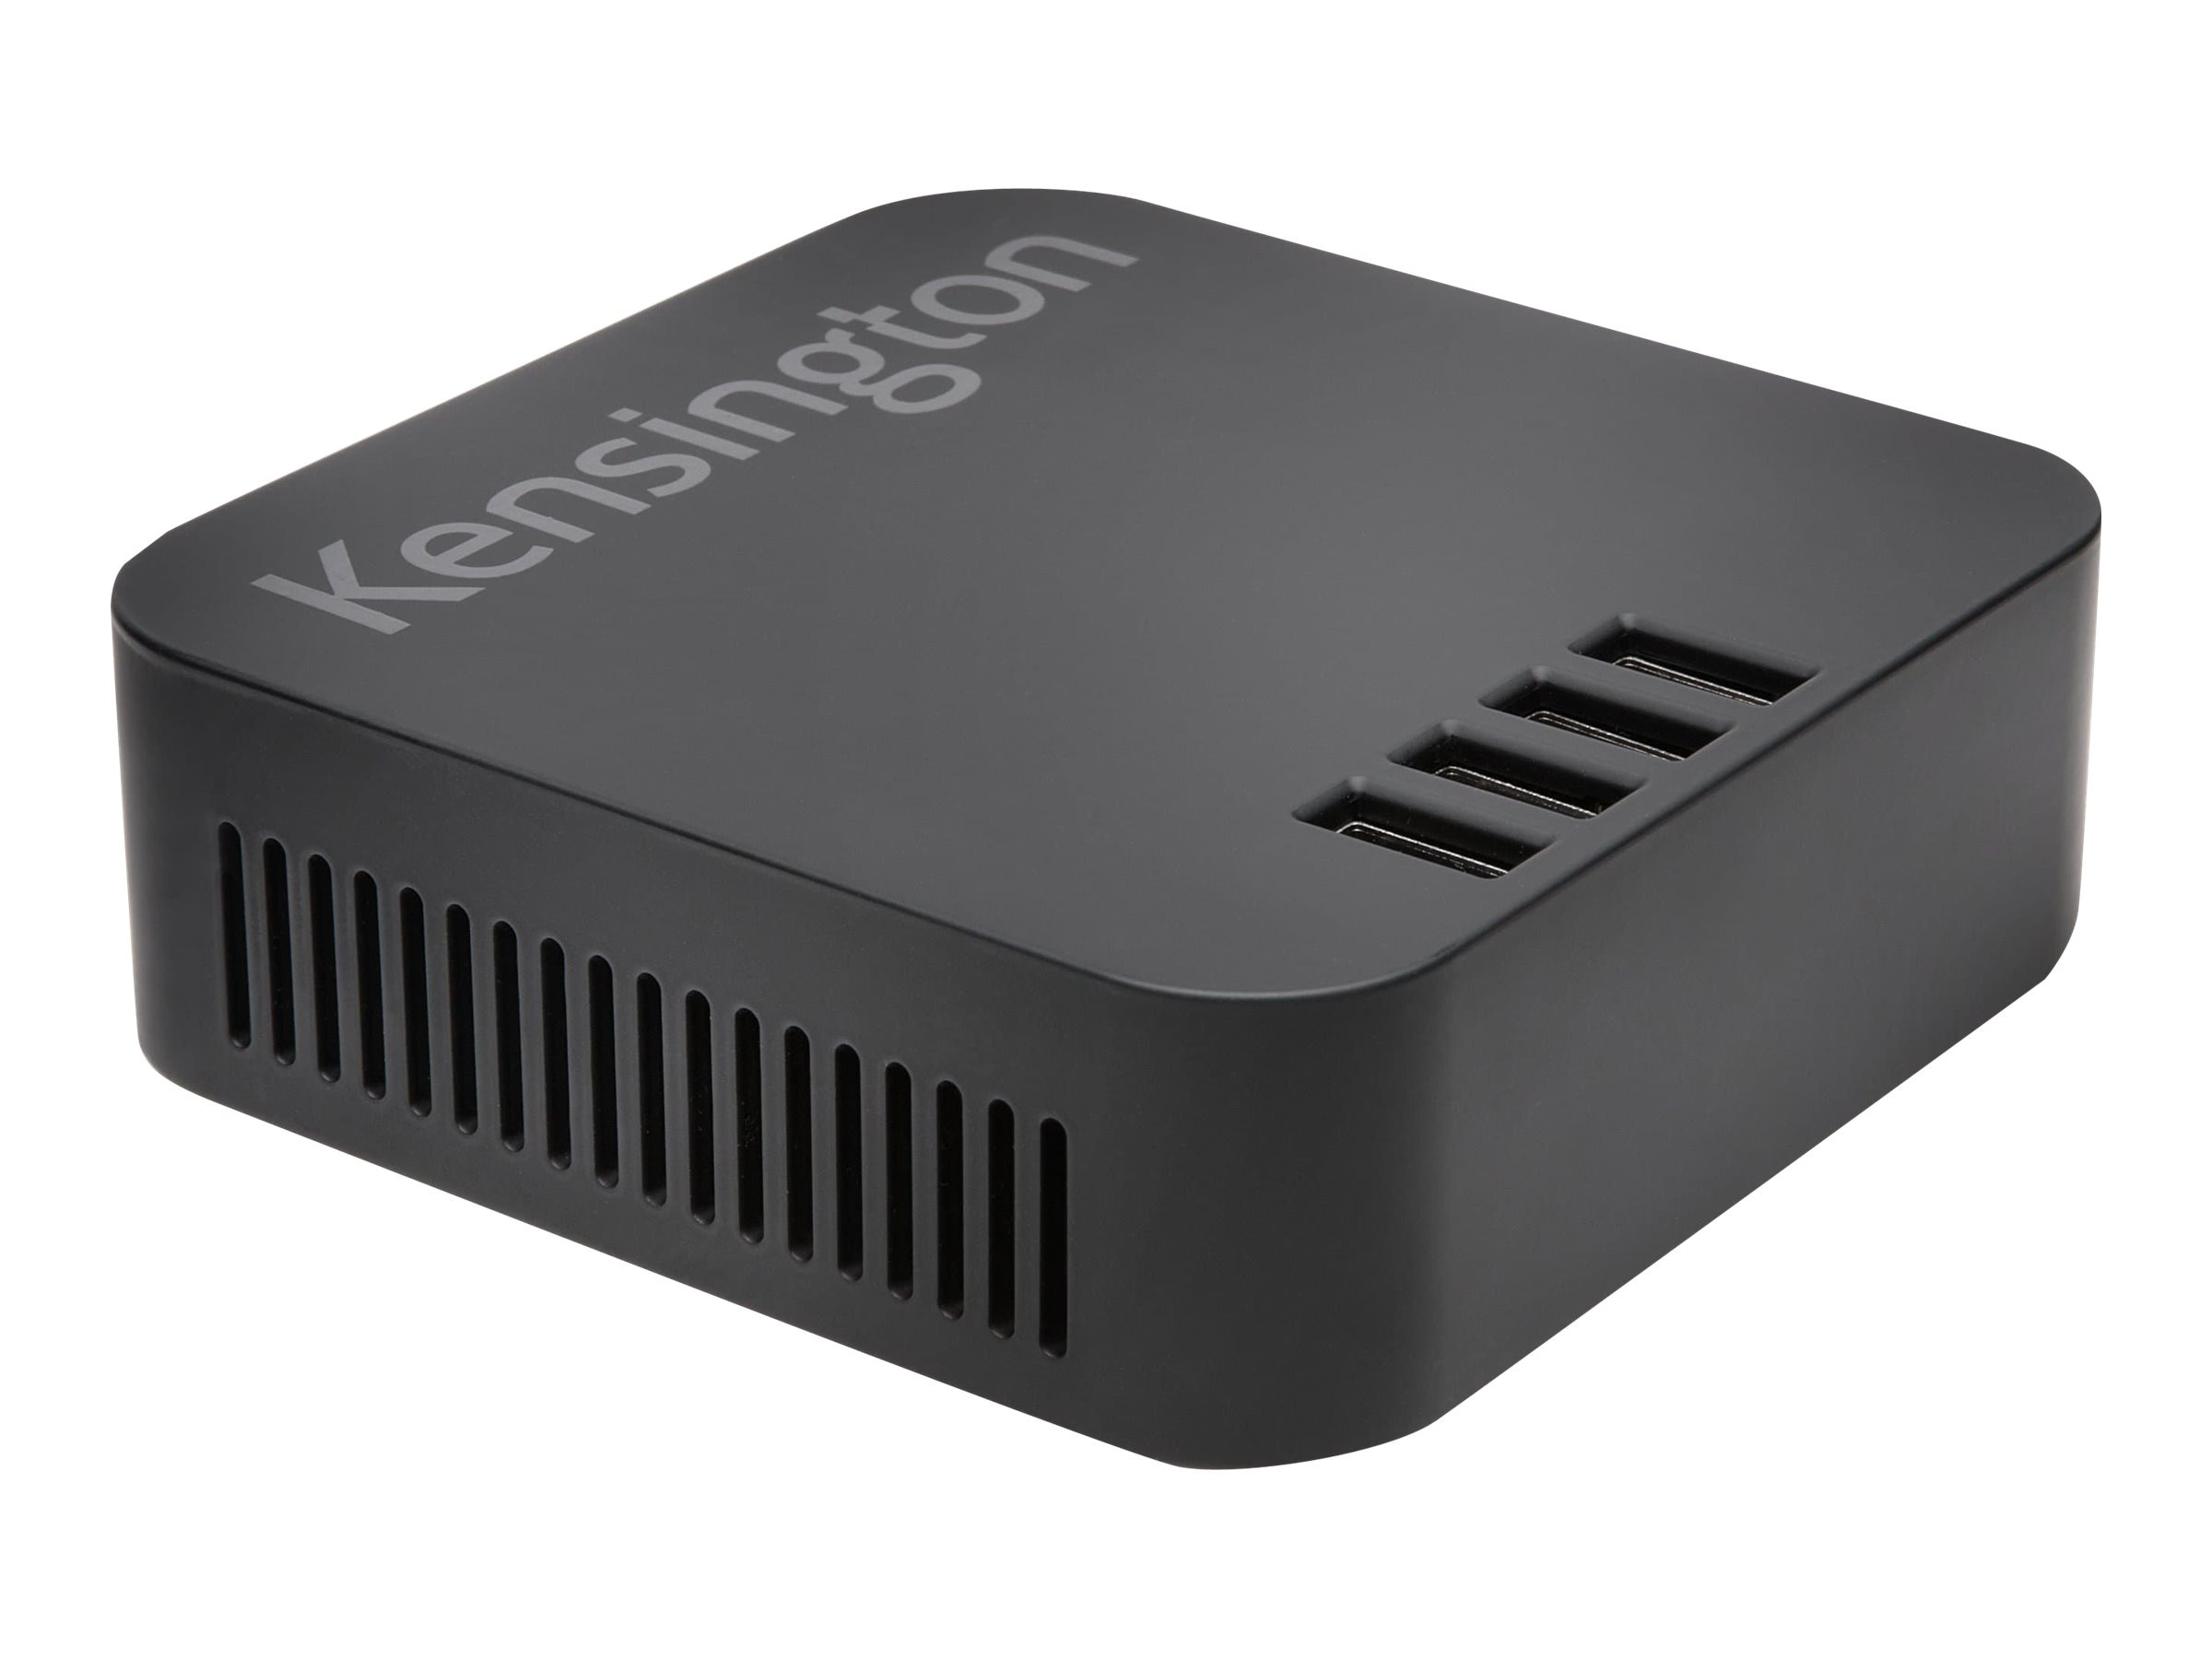 Kensington 48W 4-Port USB Charger, Black